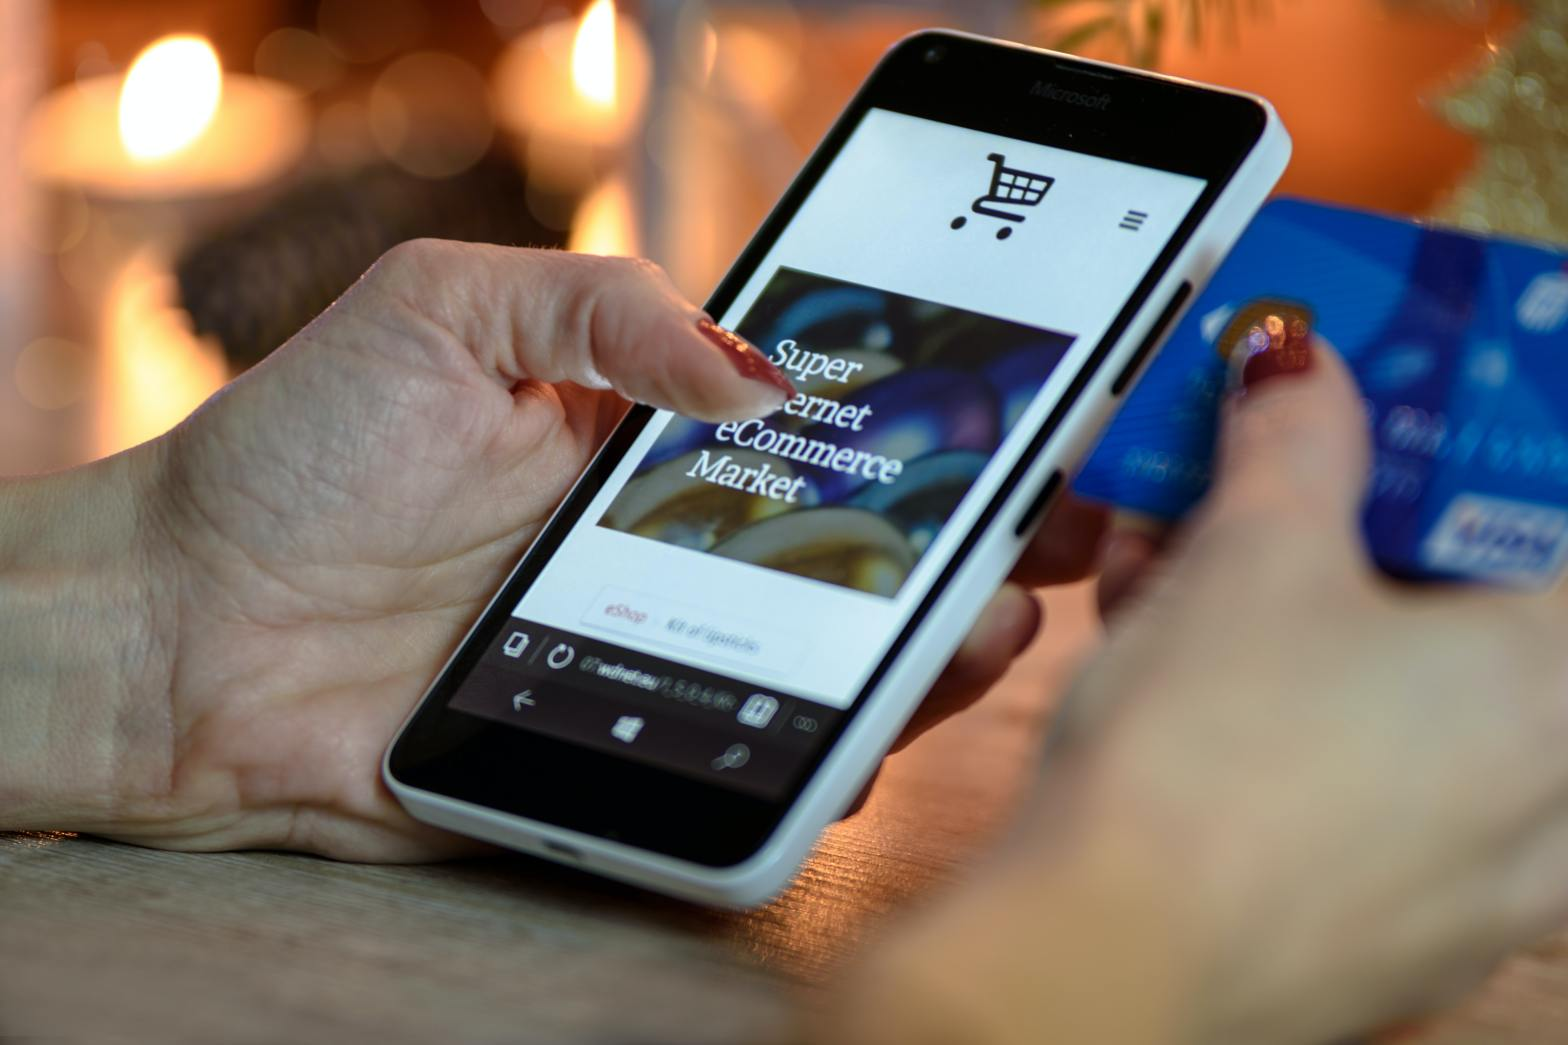 image of person shopping online with an iPhone